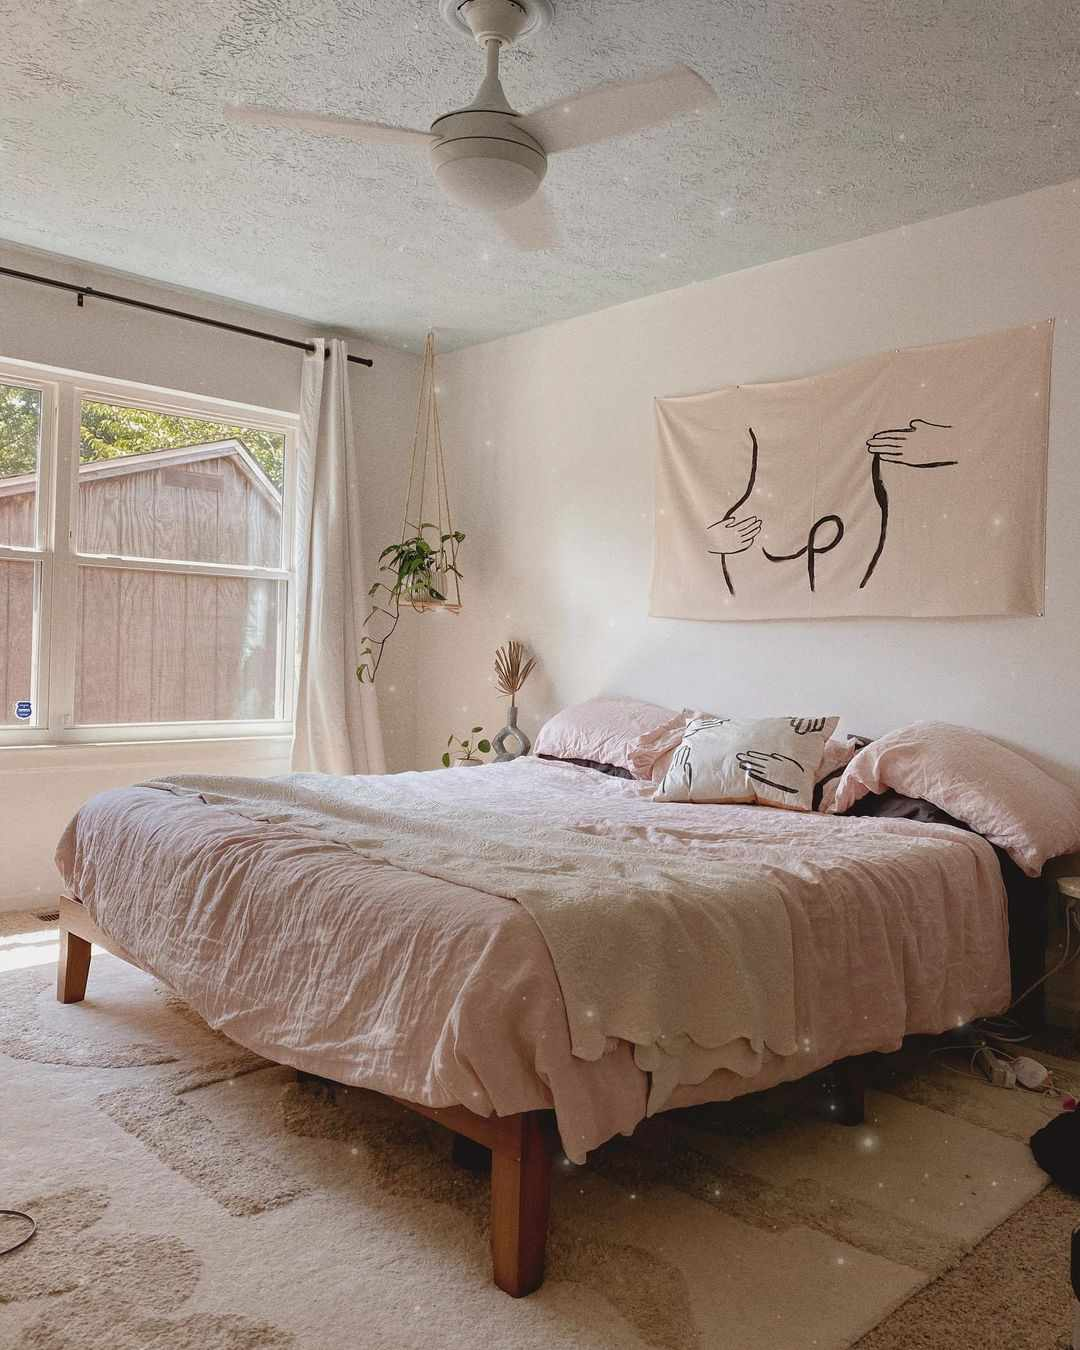 Neutral bedroom with pink bed linens and hanging plant.